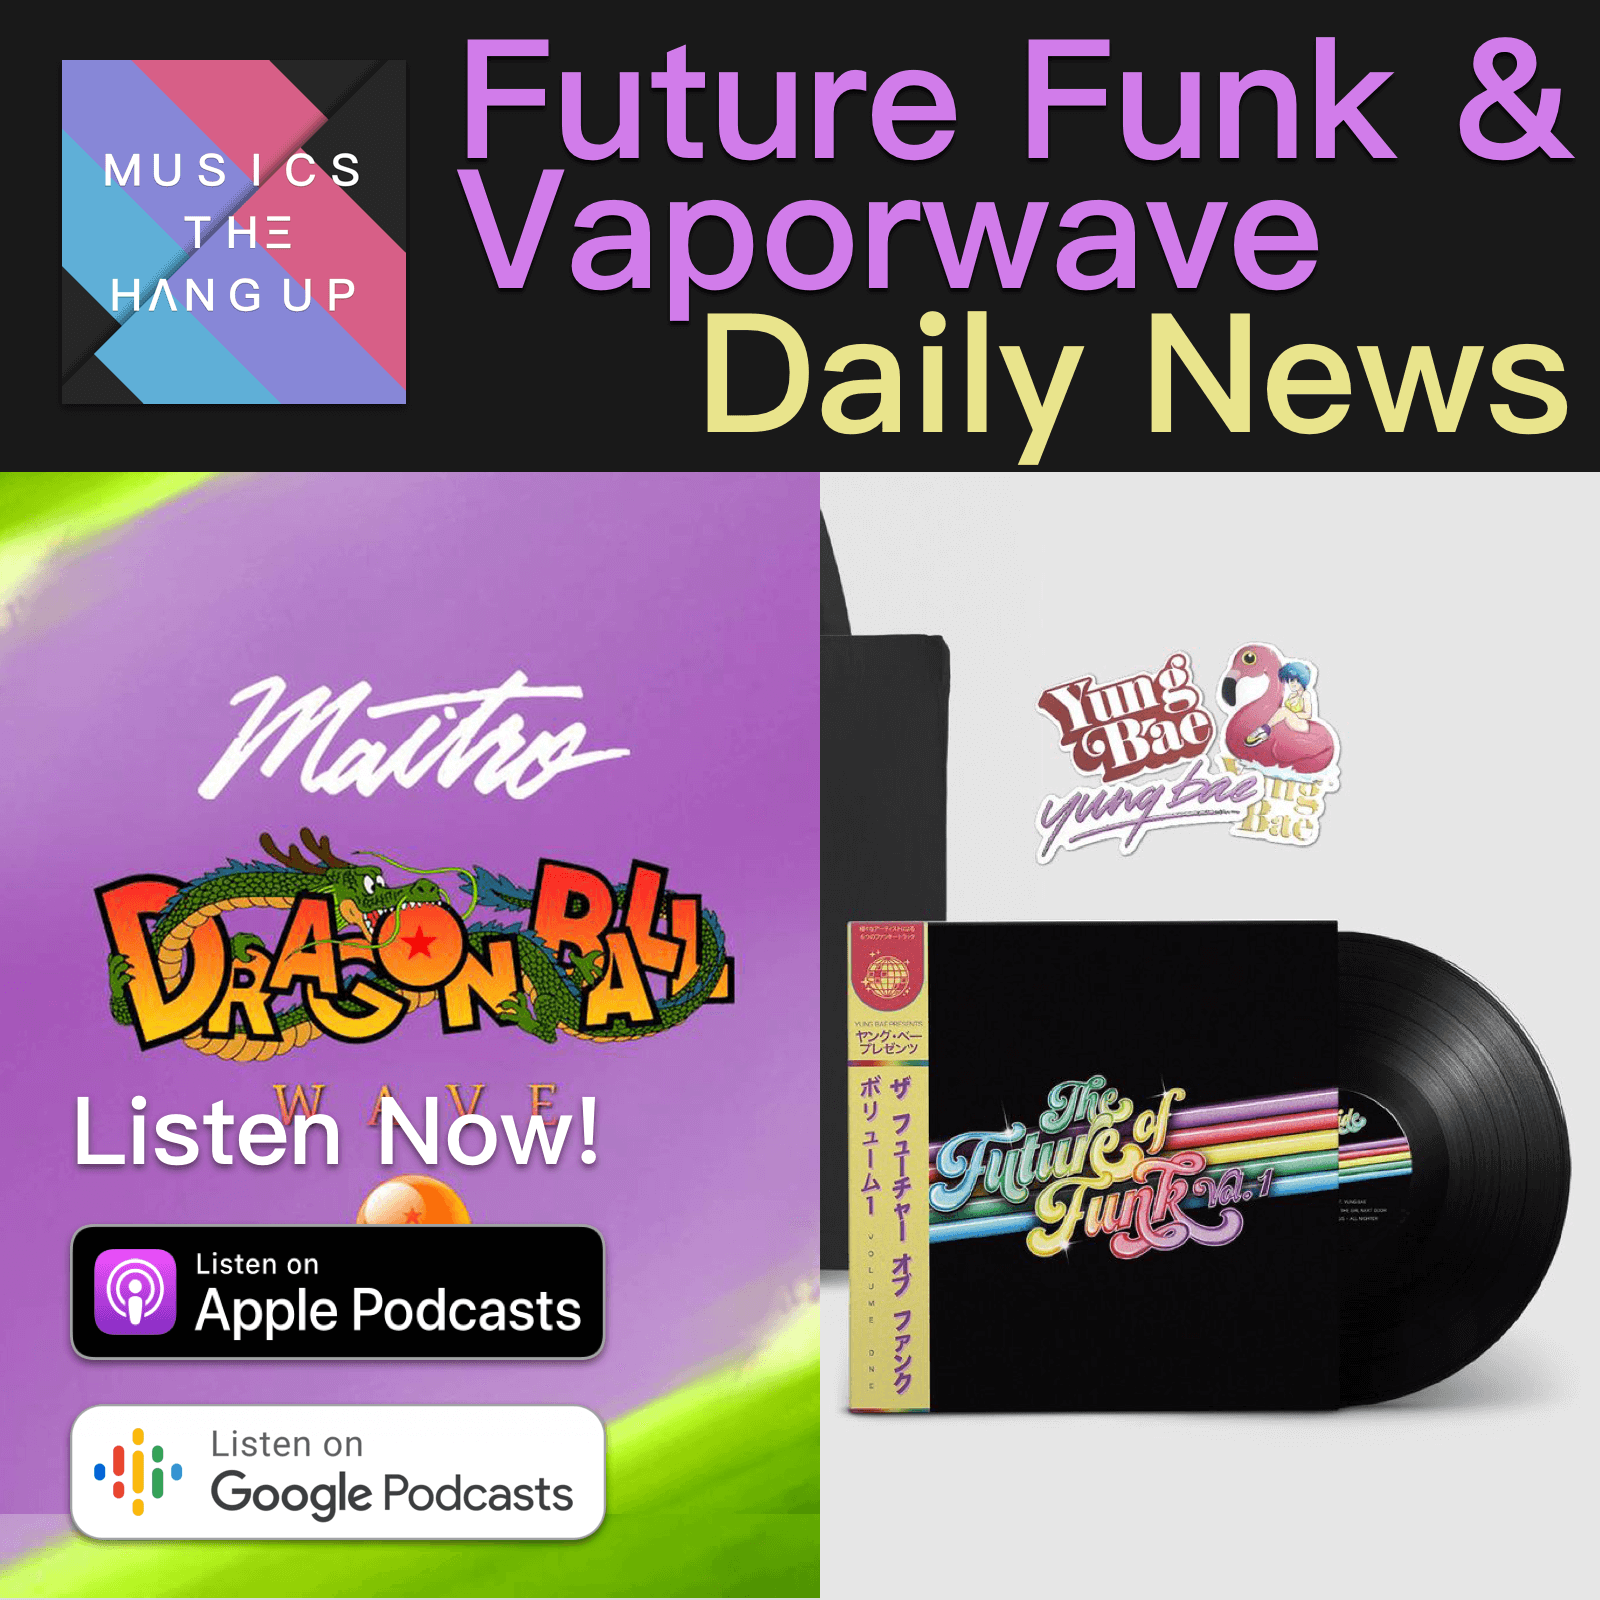 Future Funk & Vaporwave Daily News of 3/27/2019